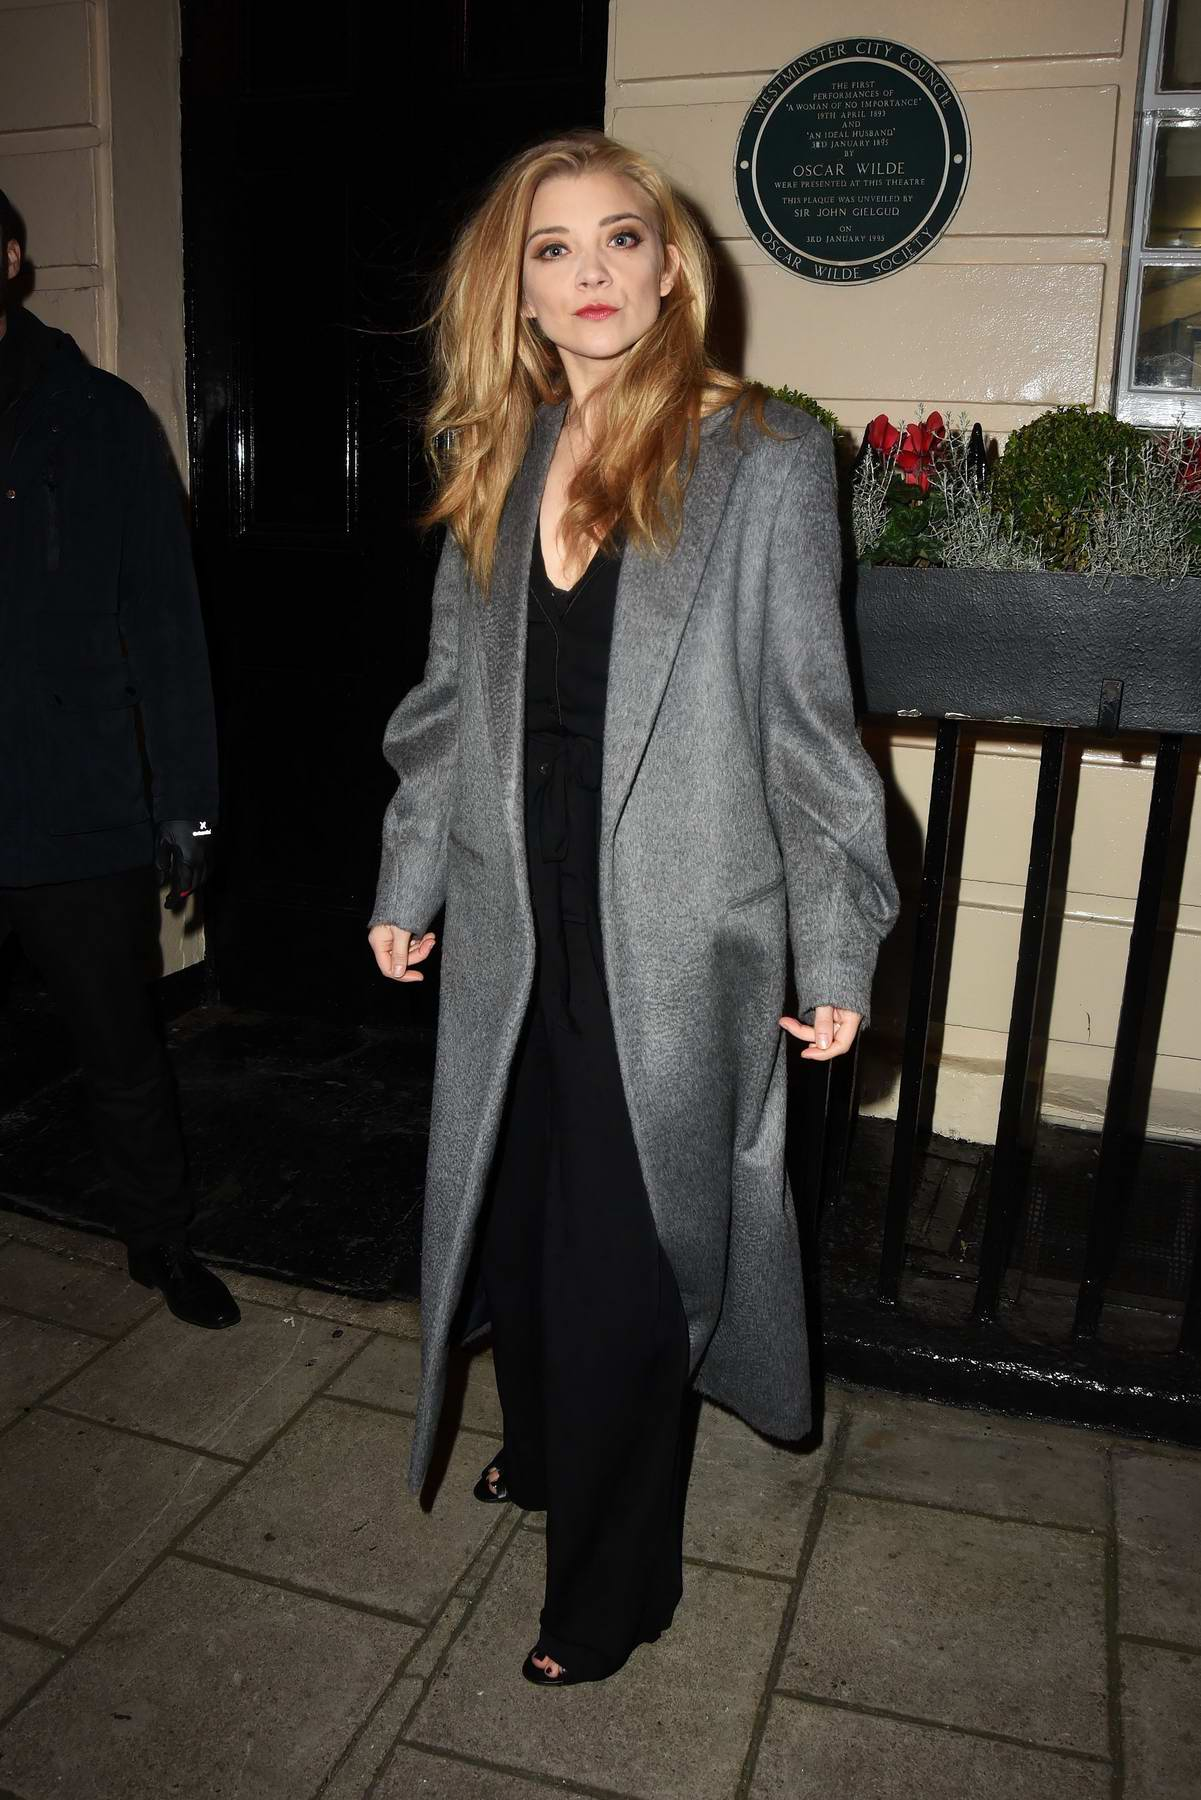 Natalie Dormer dressed in a black jumpsuit with a grey coat while out in London